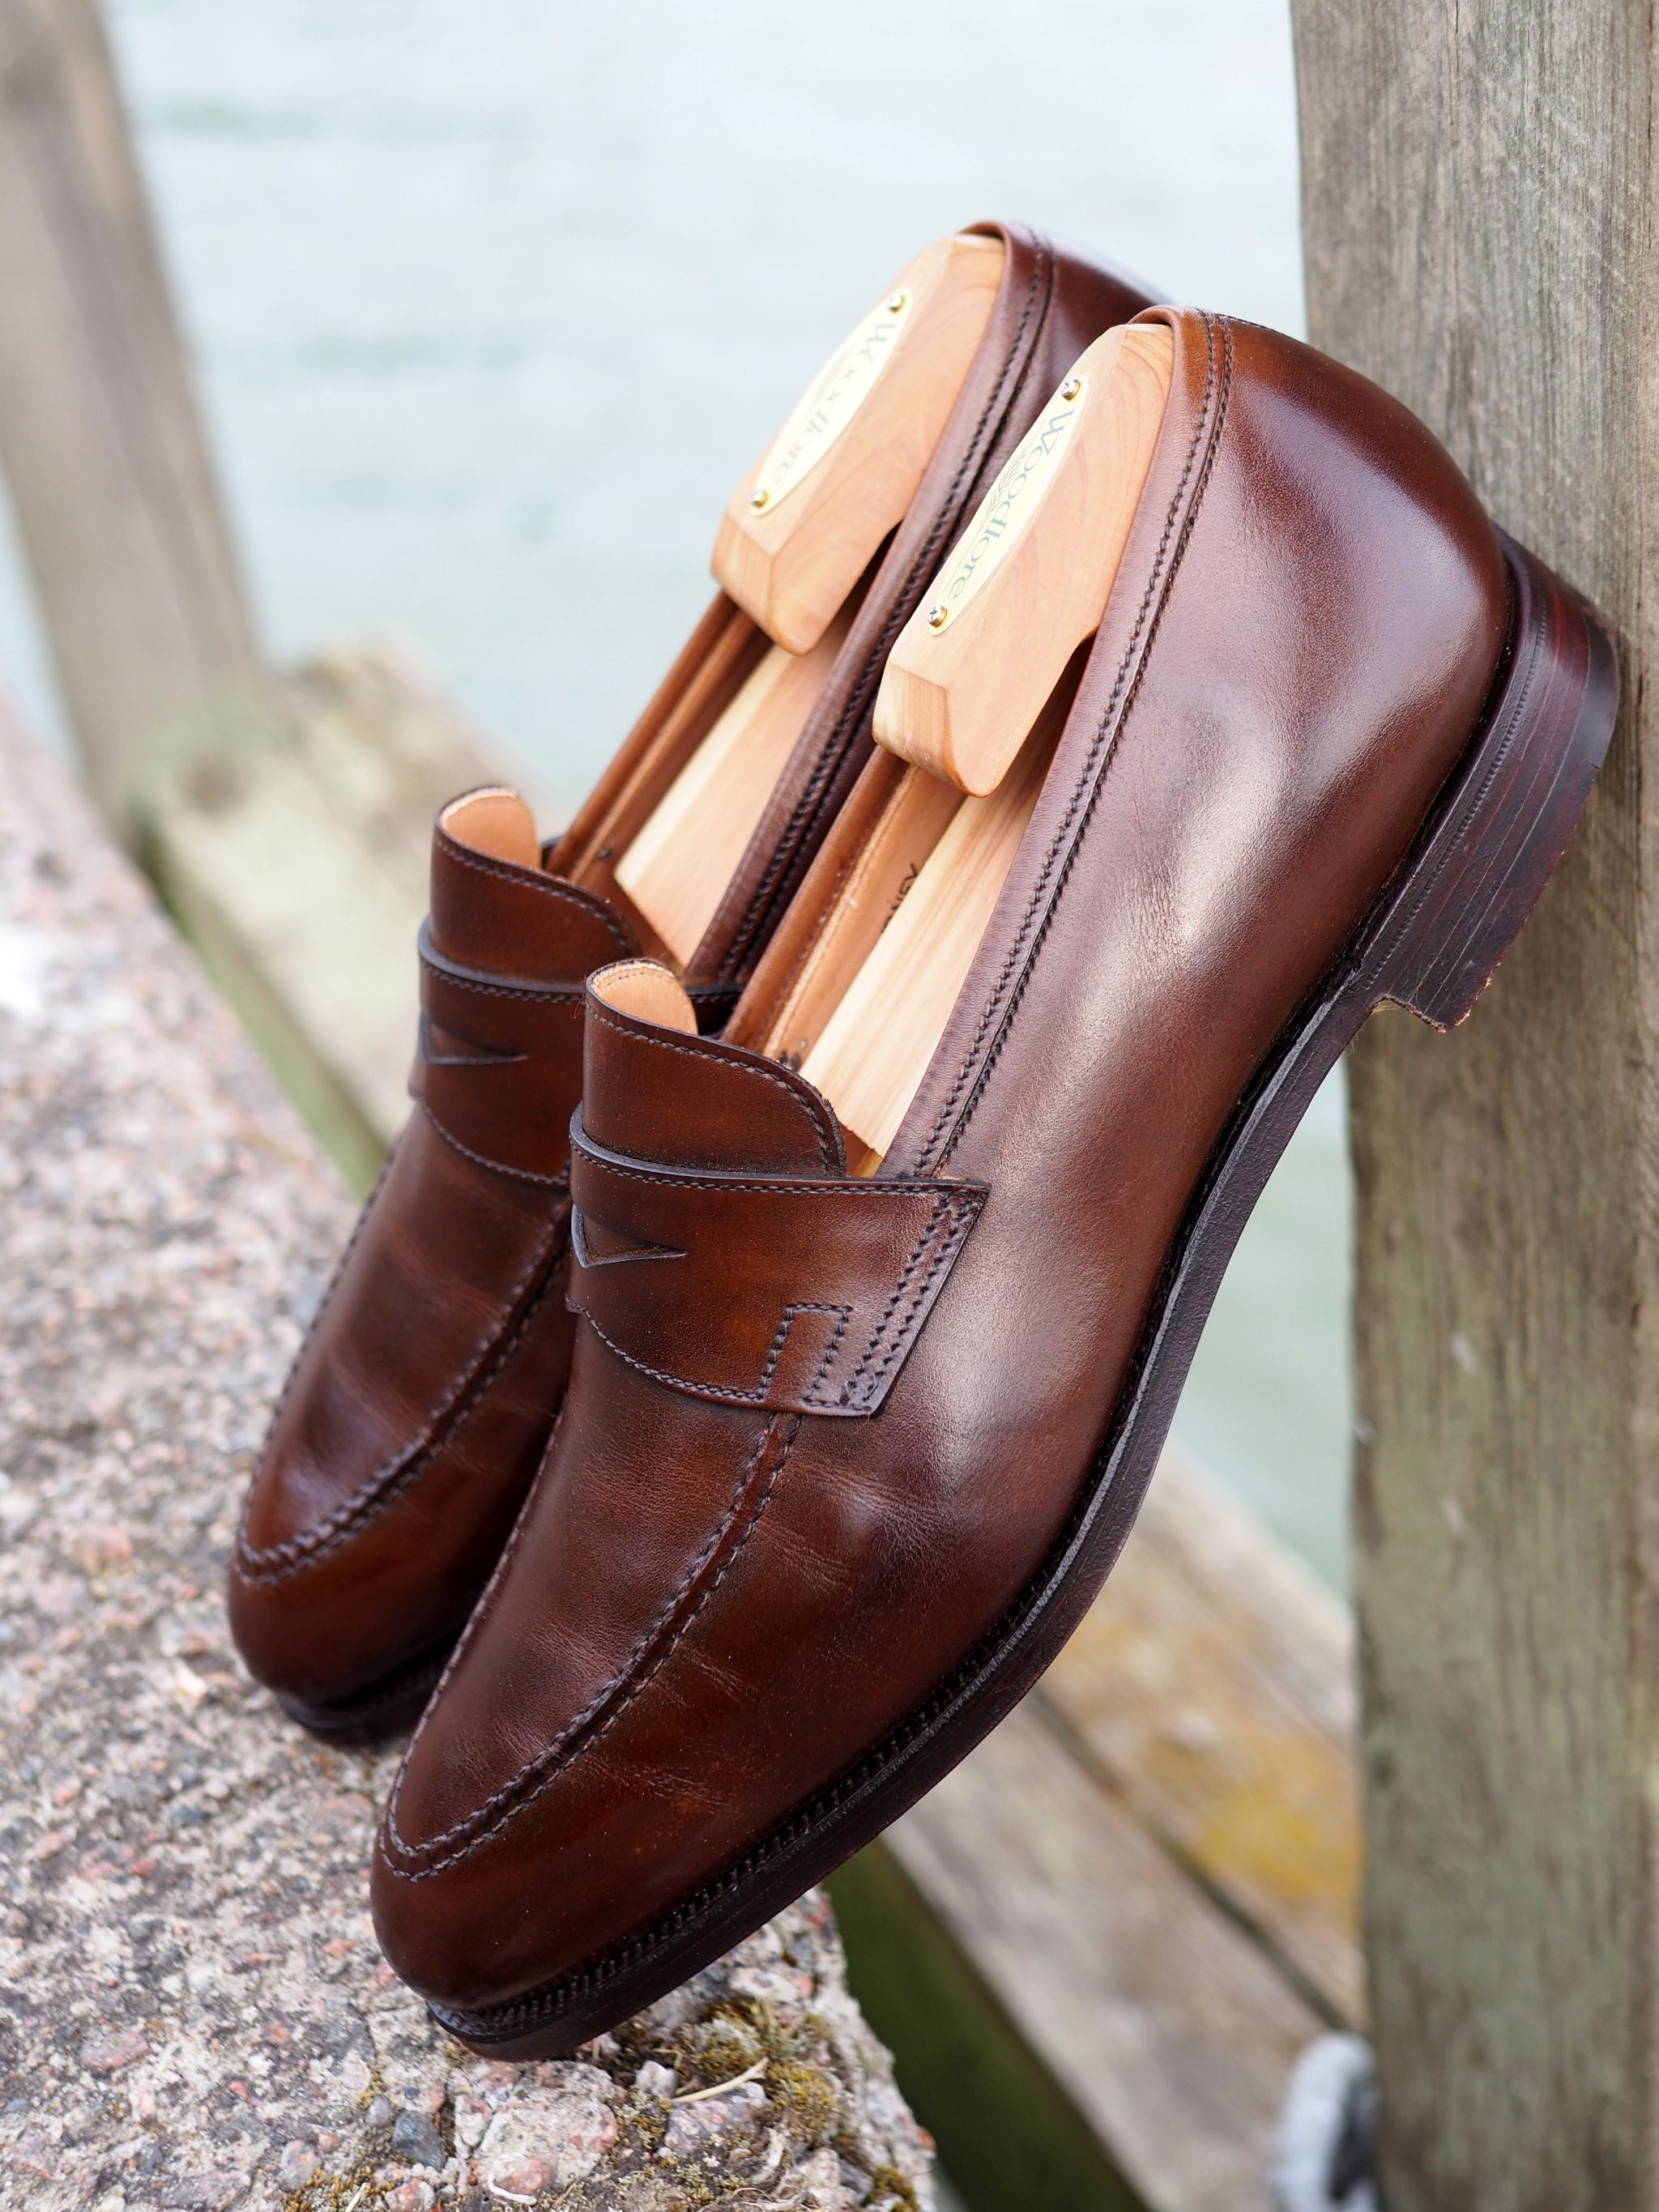 The iconic Crockett&Jones Sydney Penny loafer